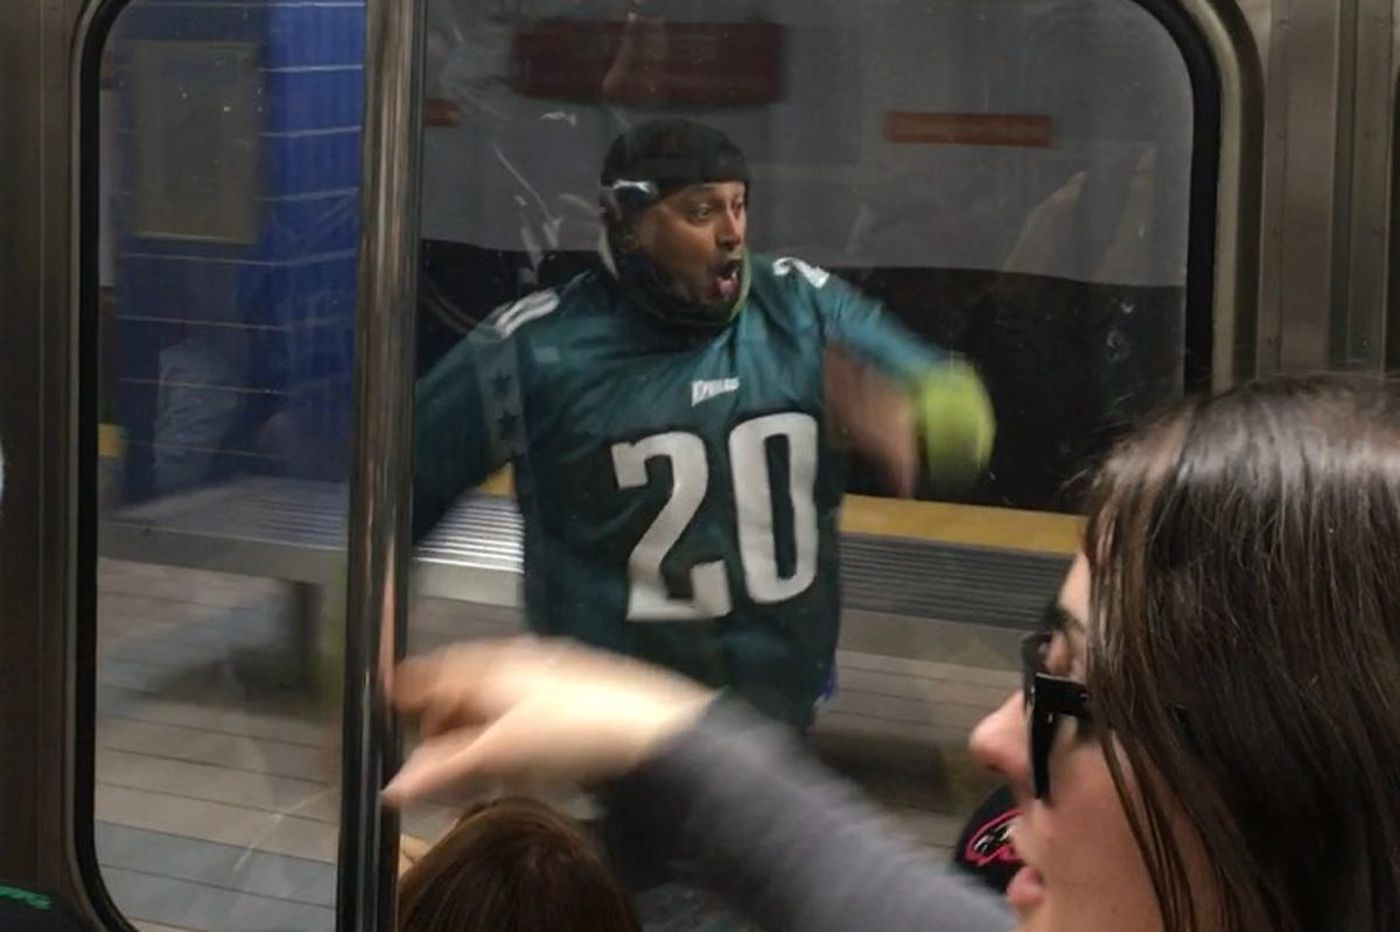 Eagles fan OK after running into pole, 6 best jokes about Nick Foles' phone call